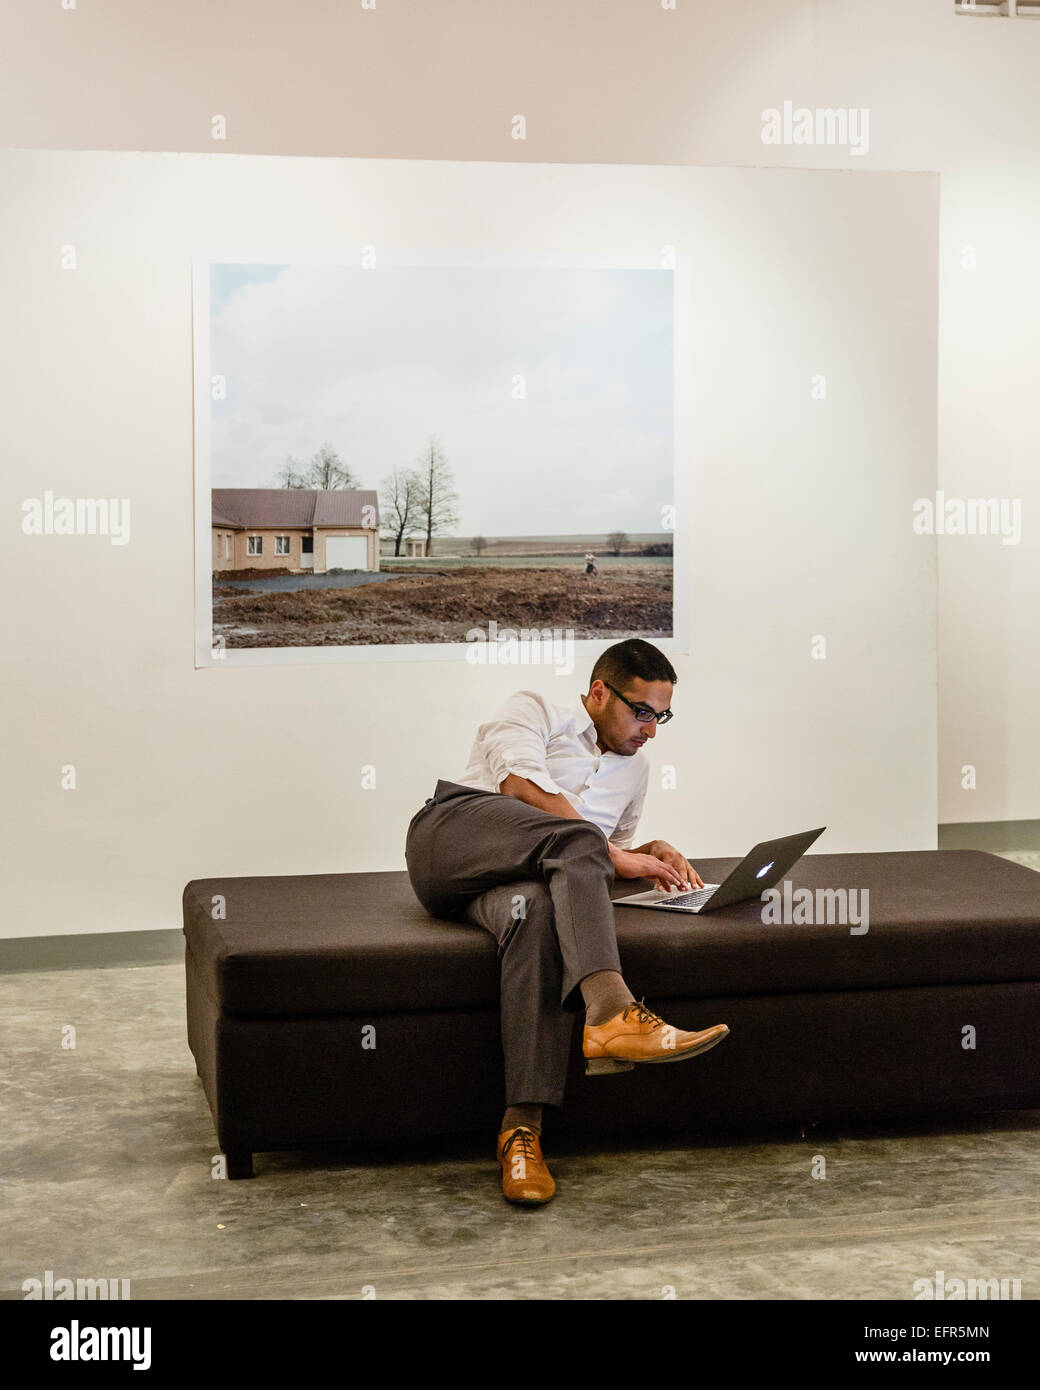 Young man sitting with a laptop computer at an art gallery, Phnom Penh, Cambodia. - Stock Image